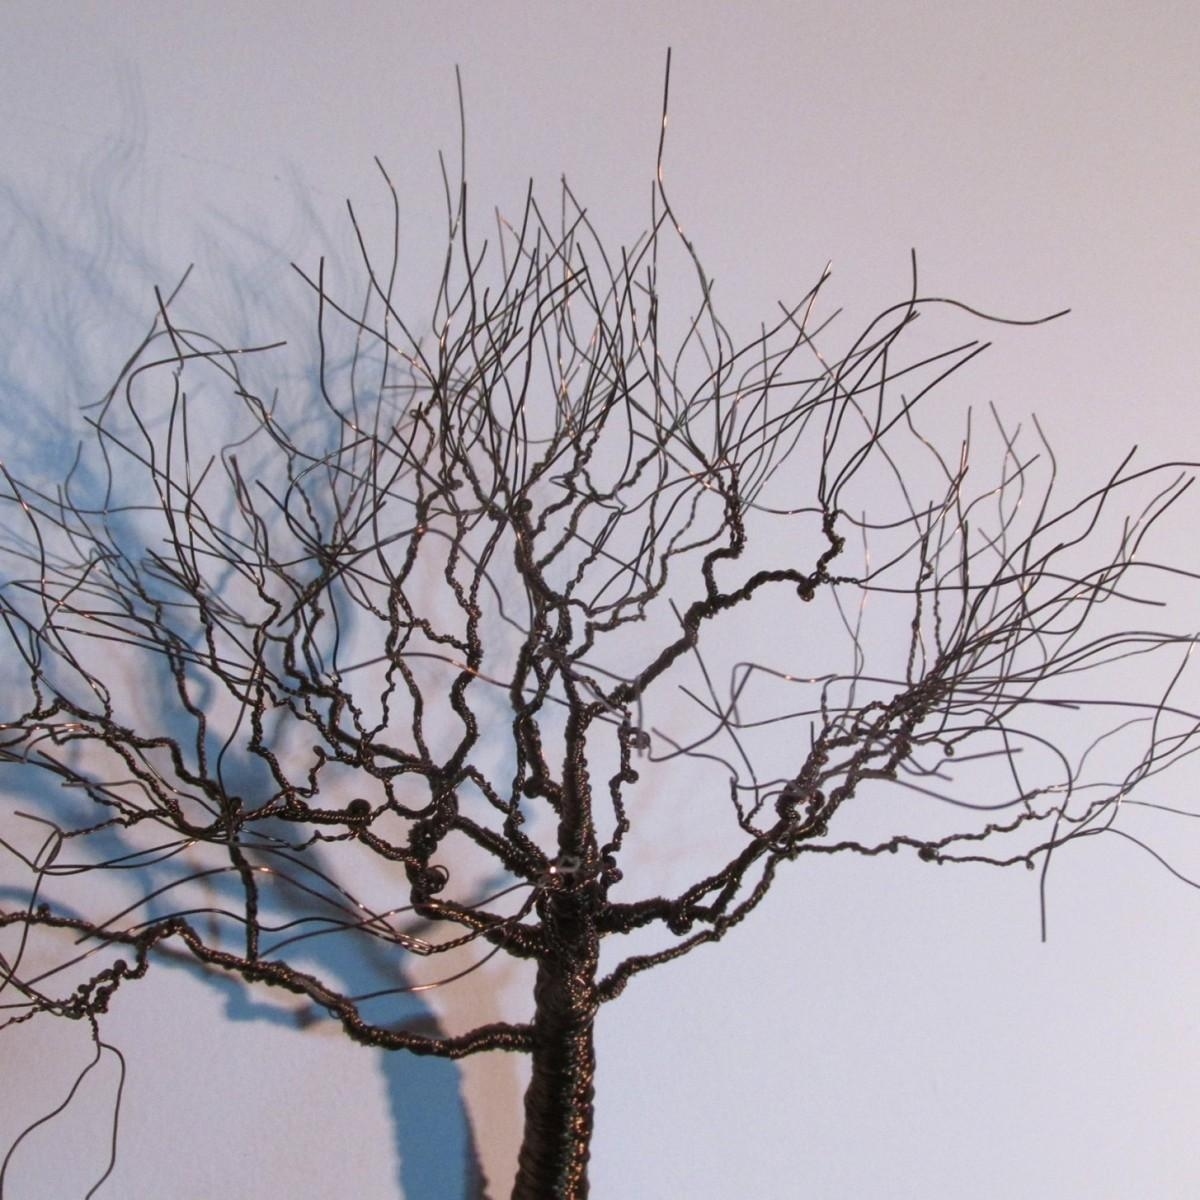 Metal Wall Art Decor As An Amazing Focal Point Intended For Metal Tree Wall Art Sculpture (View 12 of 20)